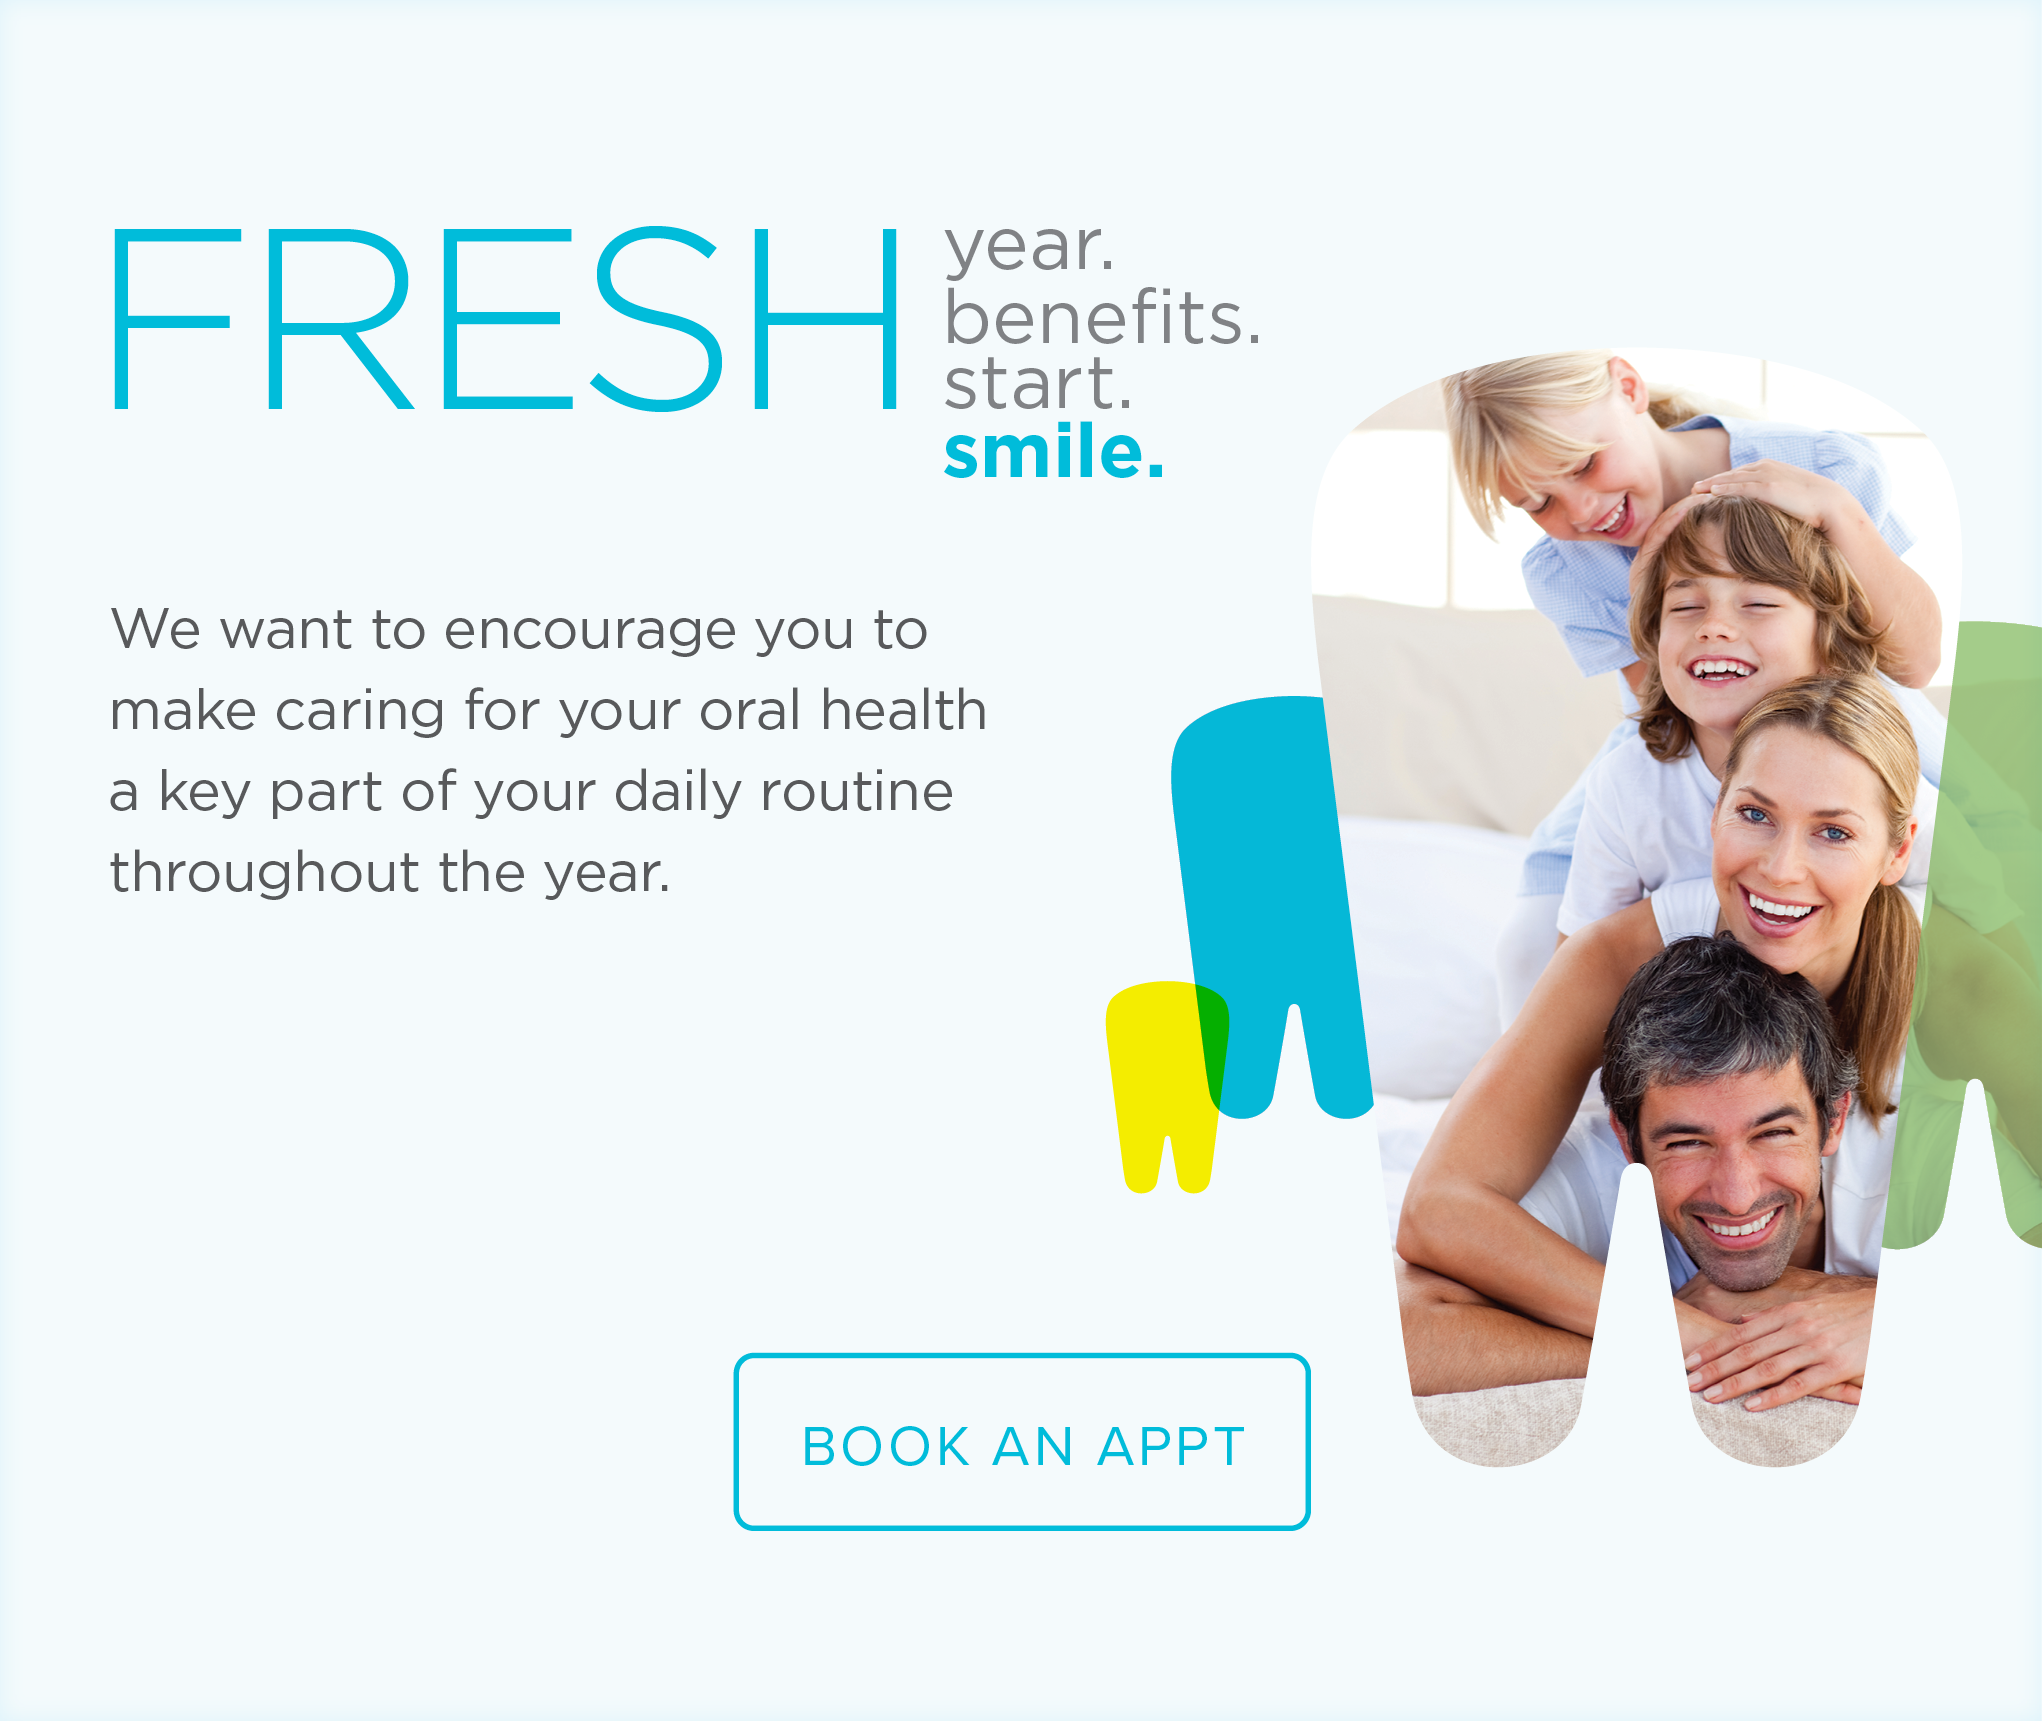 Spring Cypress Modern Dentistry - Make the Most of Your Benefits